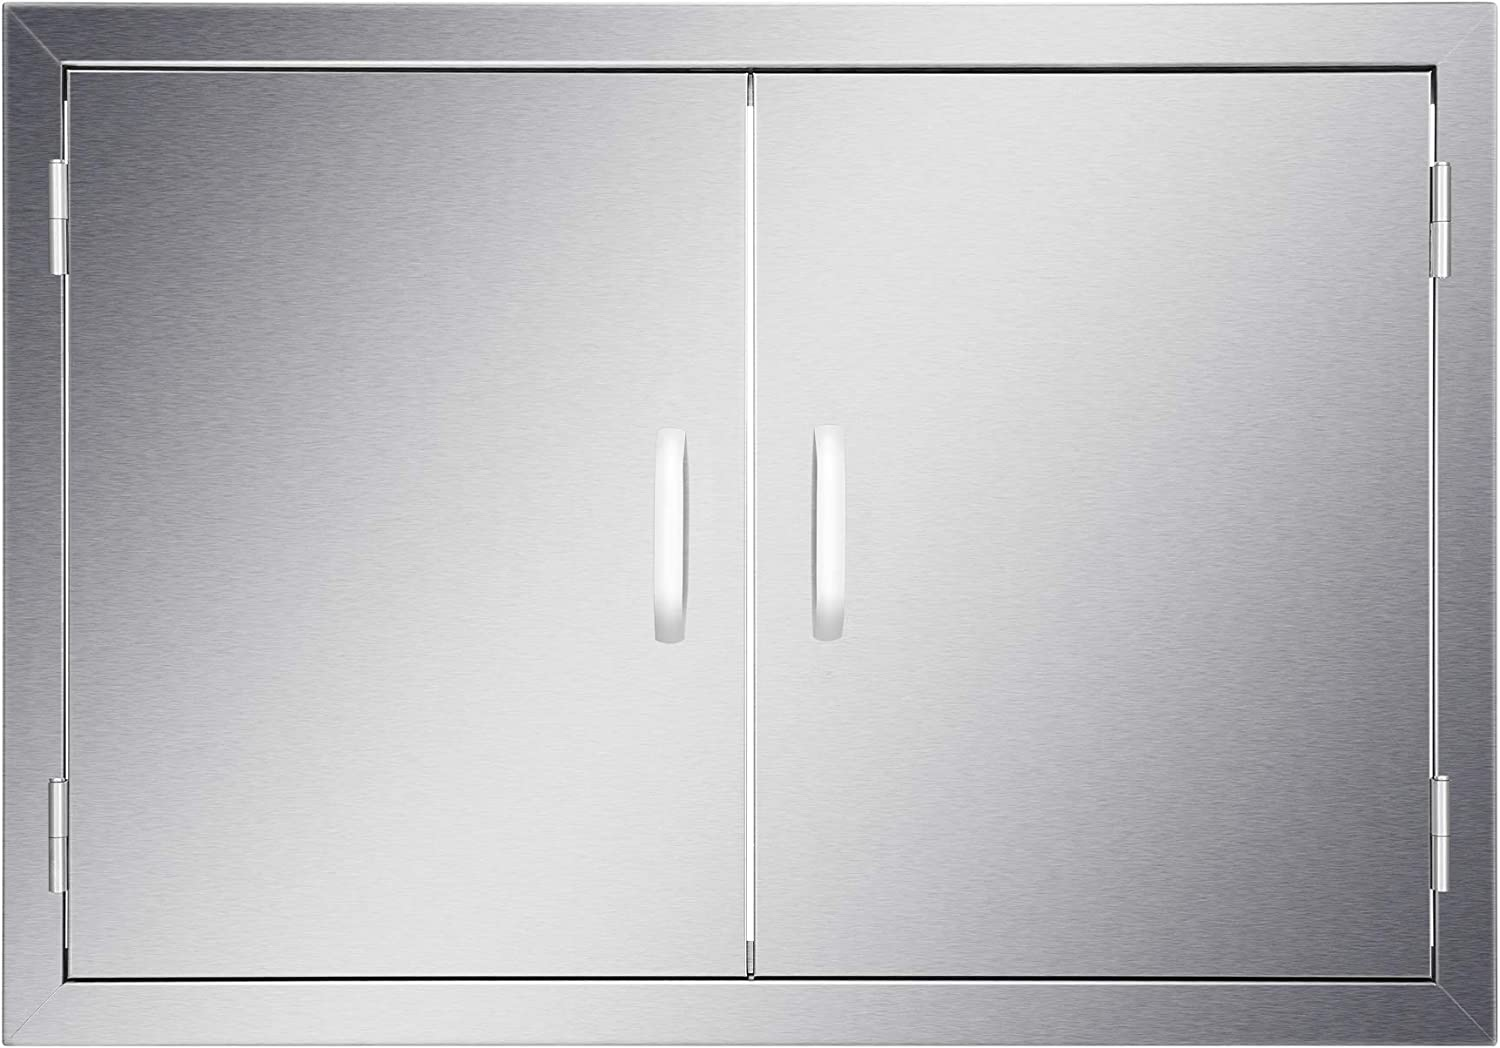 """CO-Z Outdoor Kitchen Doors, Weatherproof 304 Stainless Steel Built In Double Access Doors for Outside Kitchen Commercial BBQ Grill Grilling Island Station Barbeque Storage Cabinet (30.5""""W x 21""""H)"""